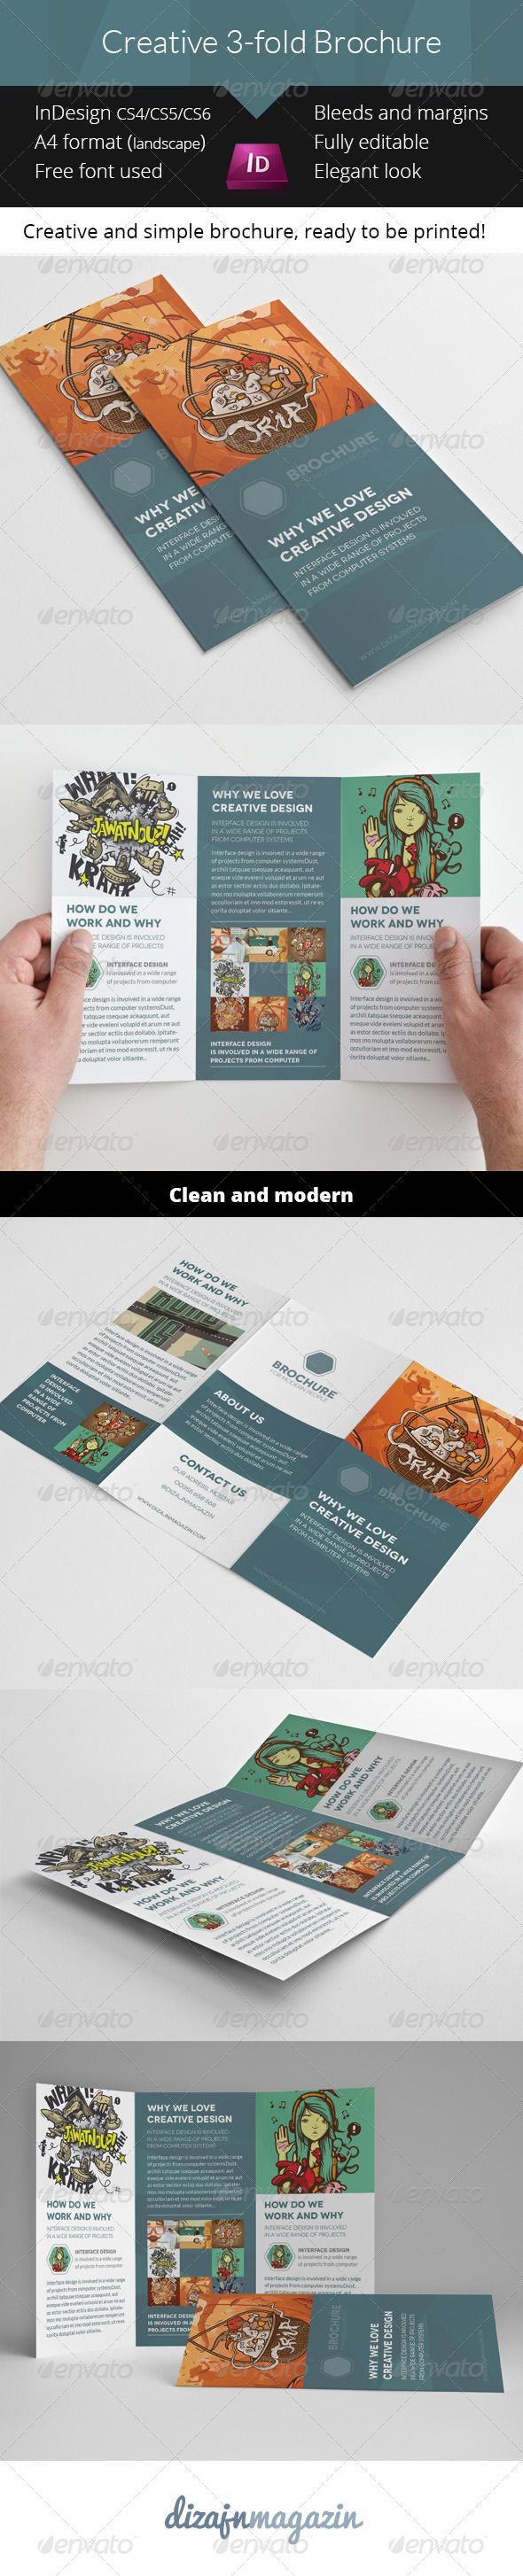 66 best images about adobe indesign on pinterest adobe for Indesign templates brochure